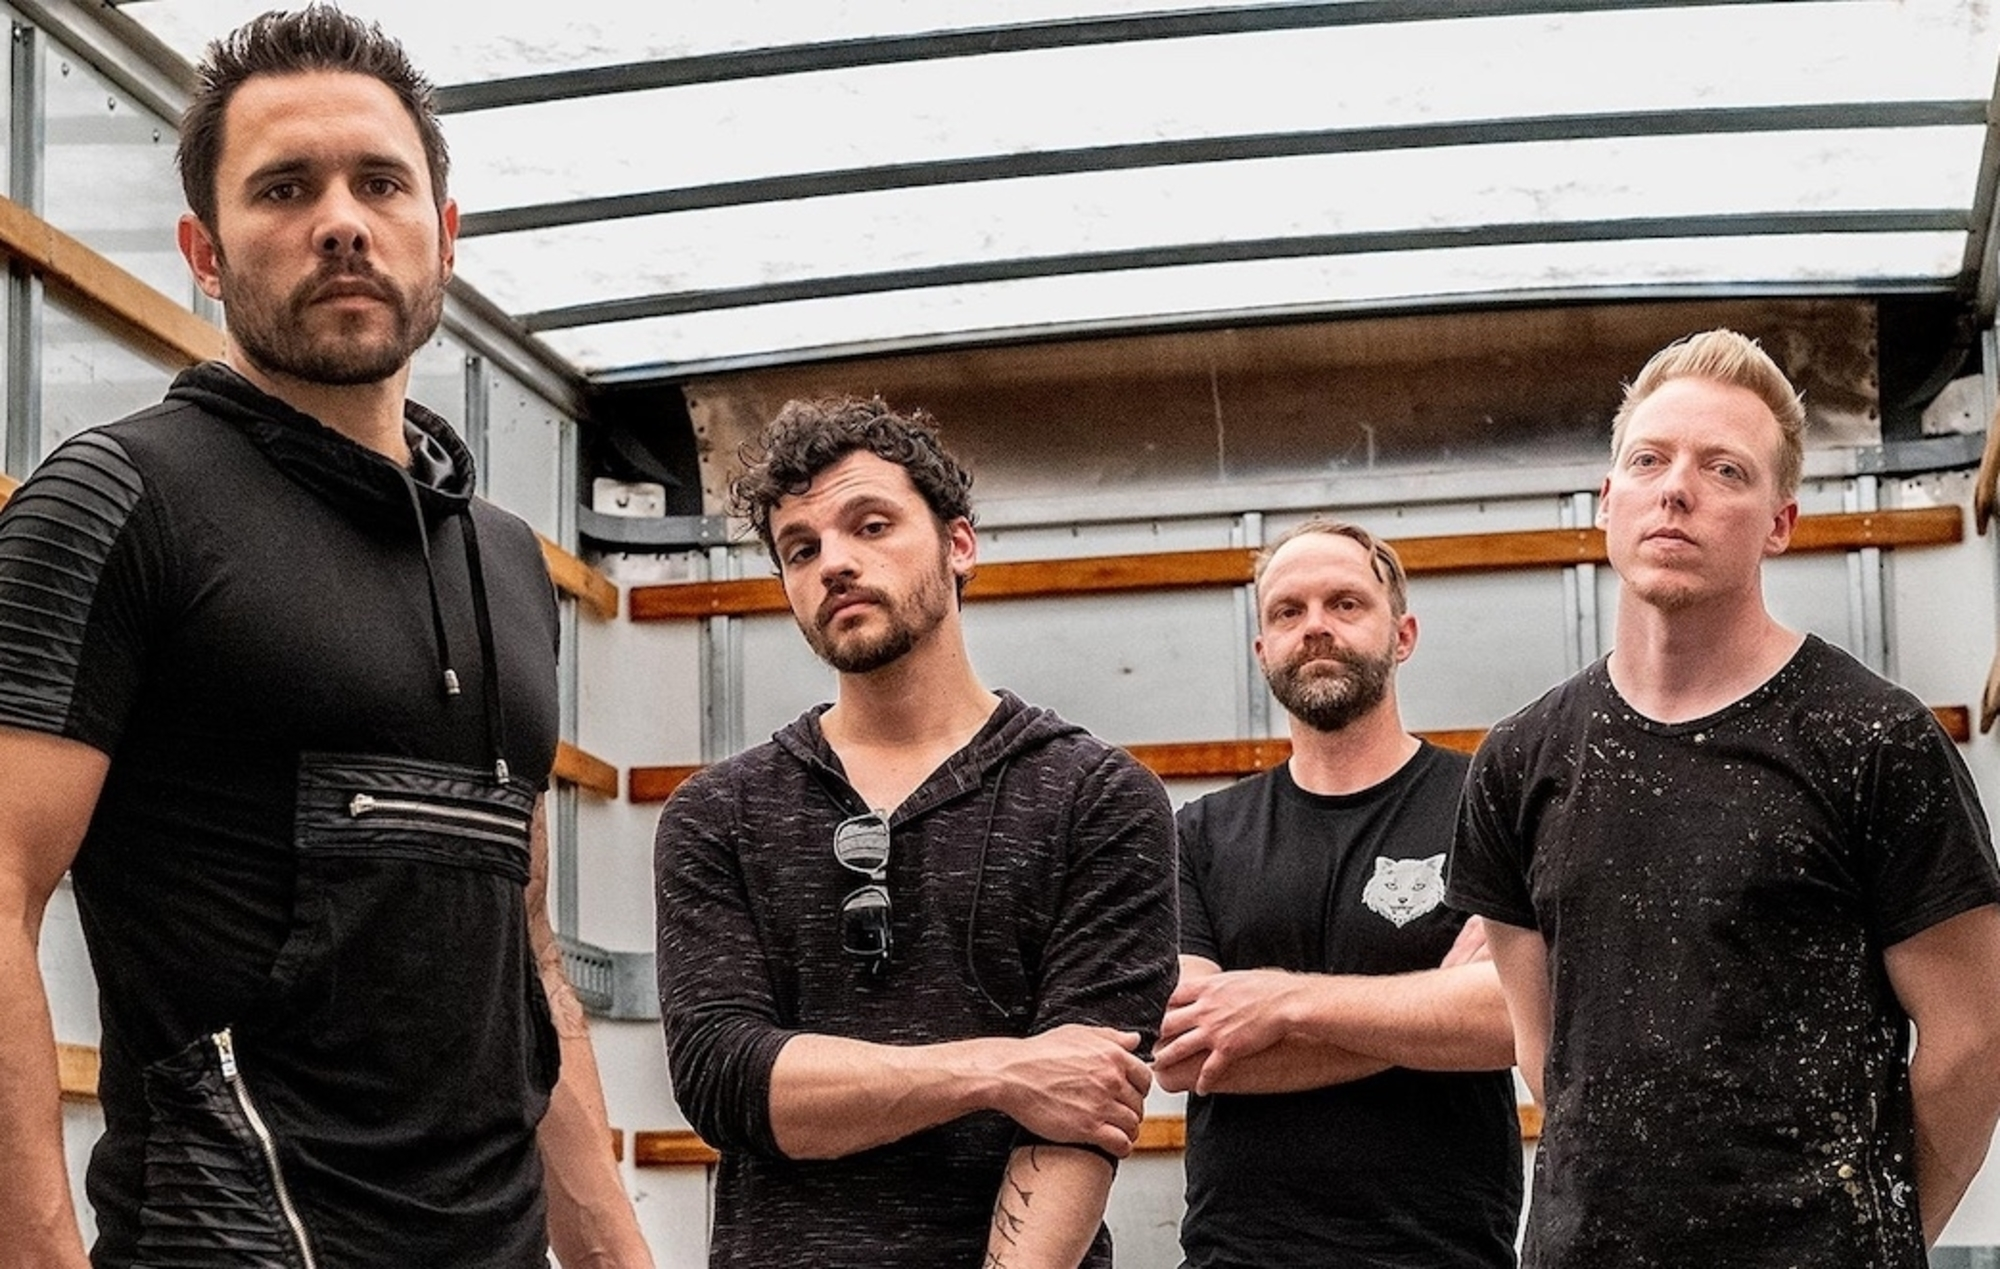 """Trapt's Michael Smith quits band """"I do not agree with how certain things have been handled"""""""